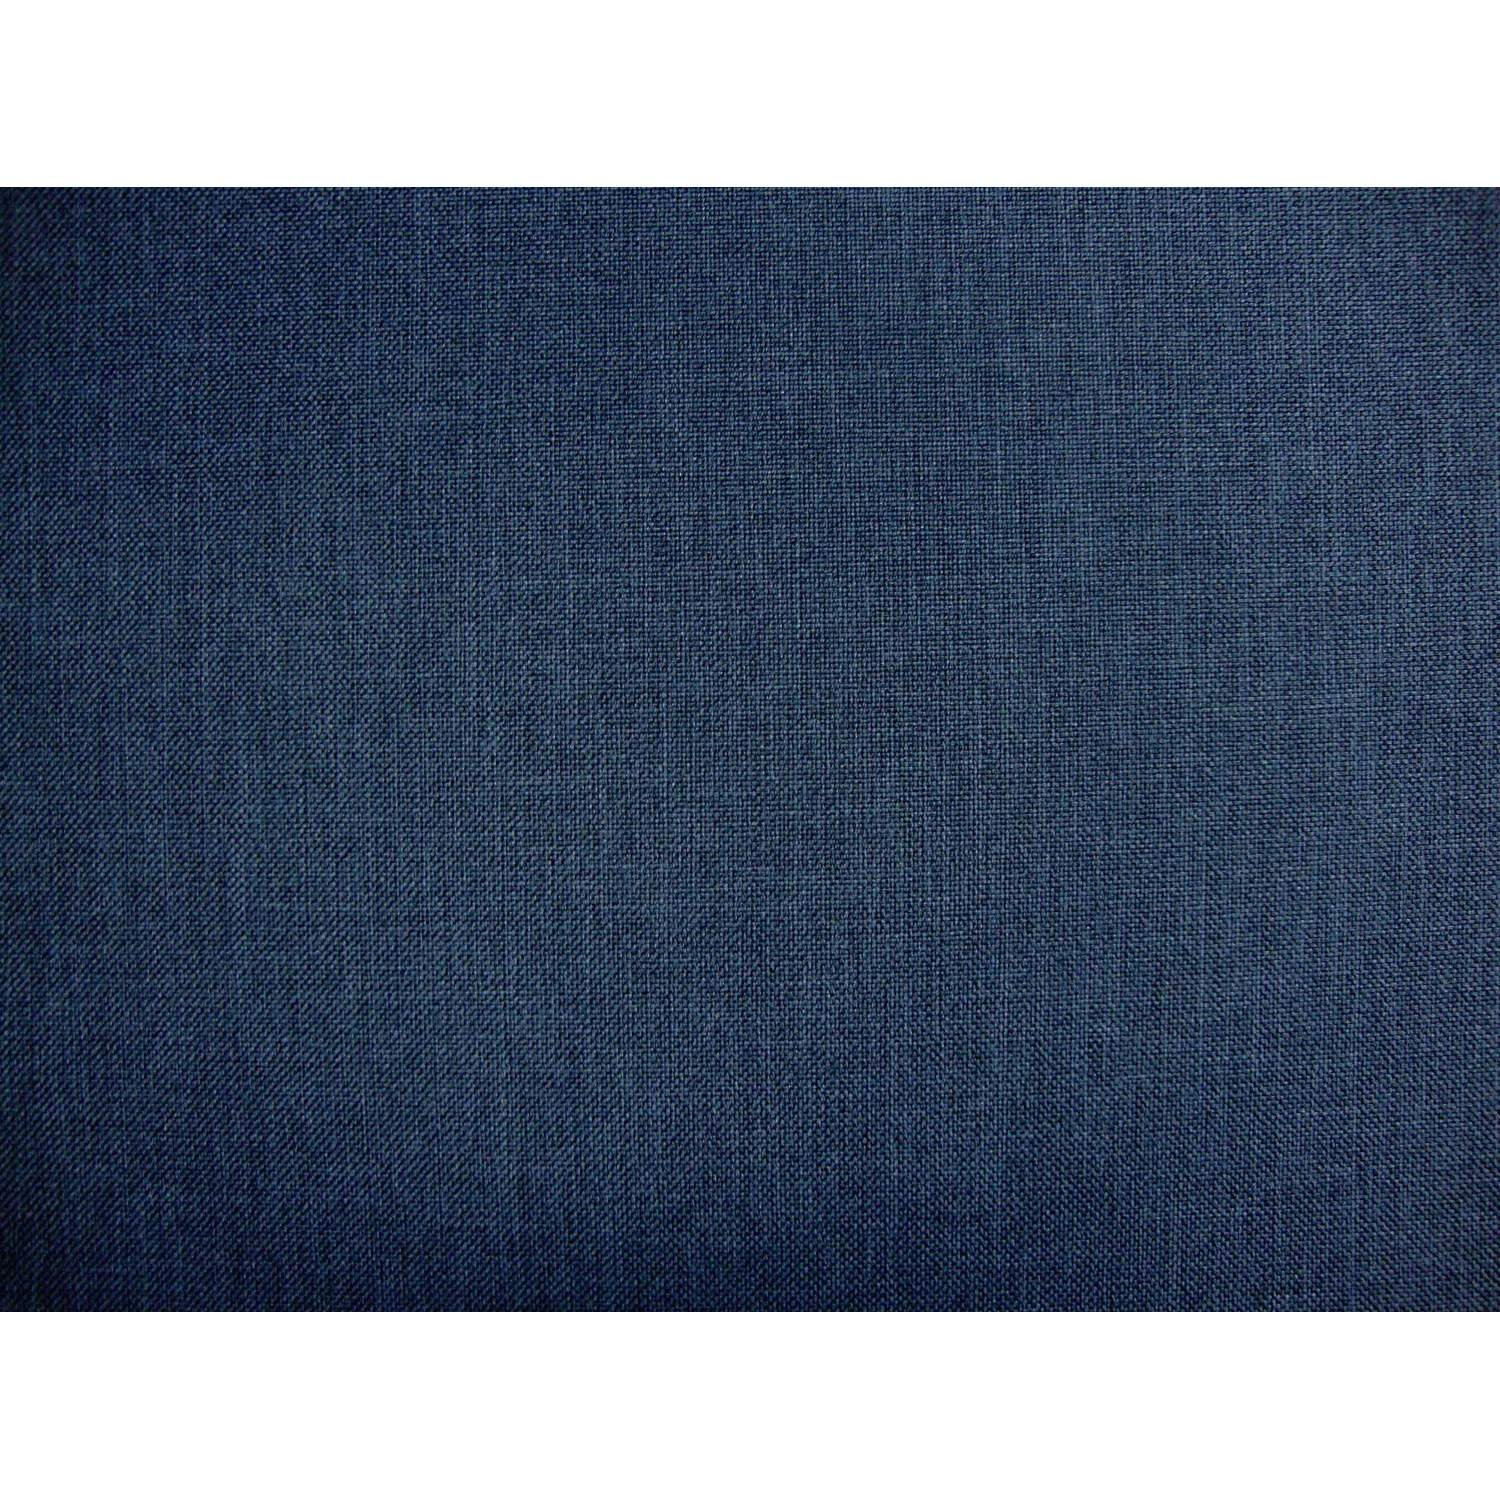 DCG Stores Umax Linen Texture Denim Futon Cover - Full by DCG Stores